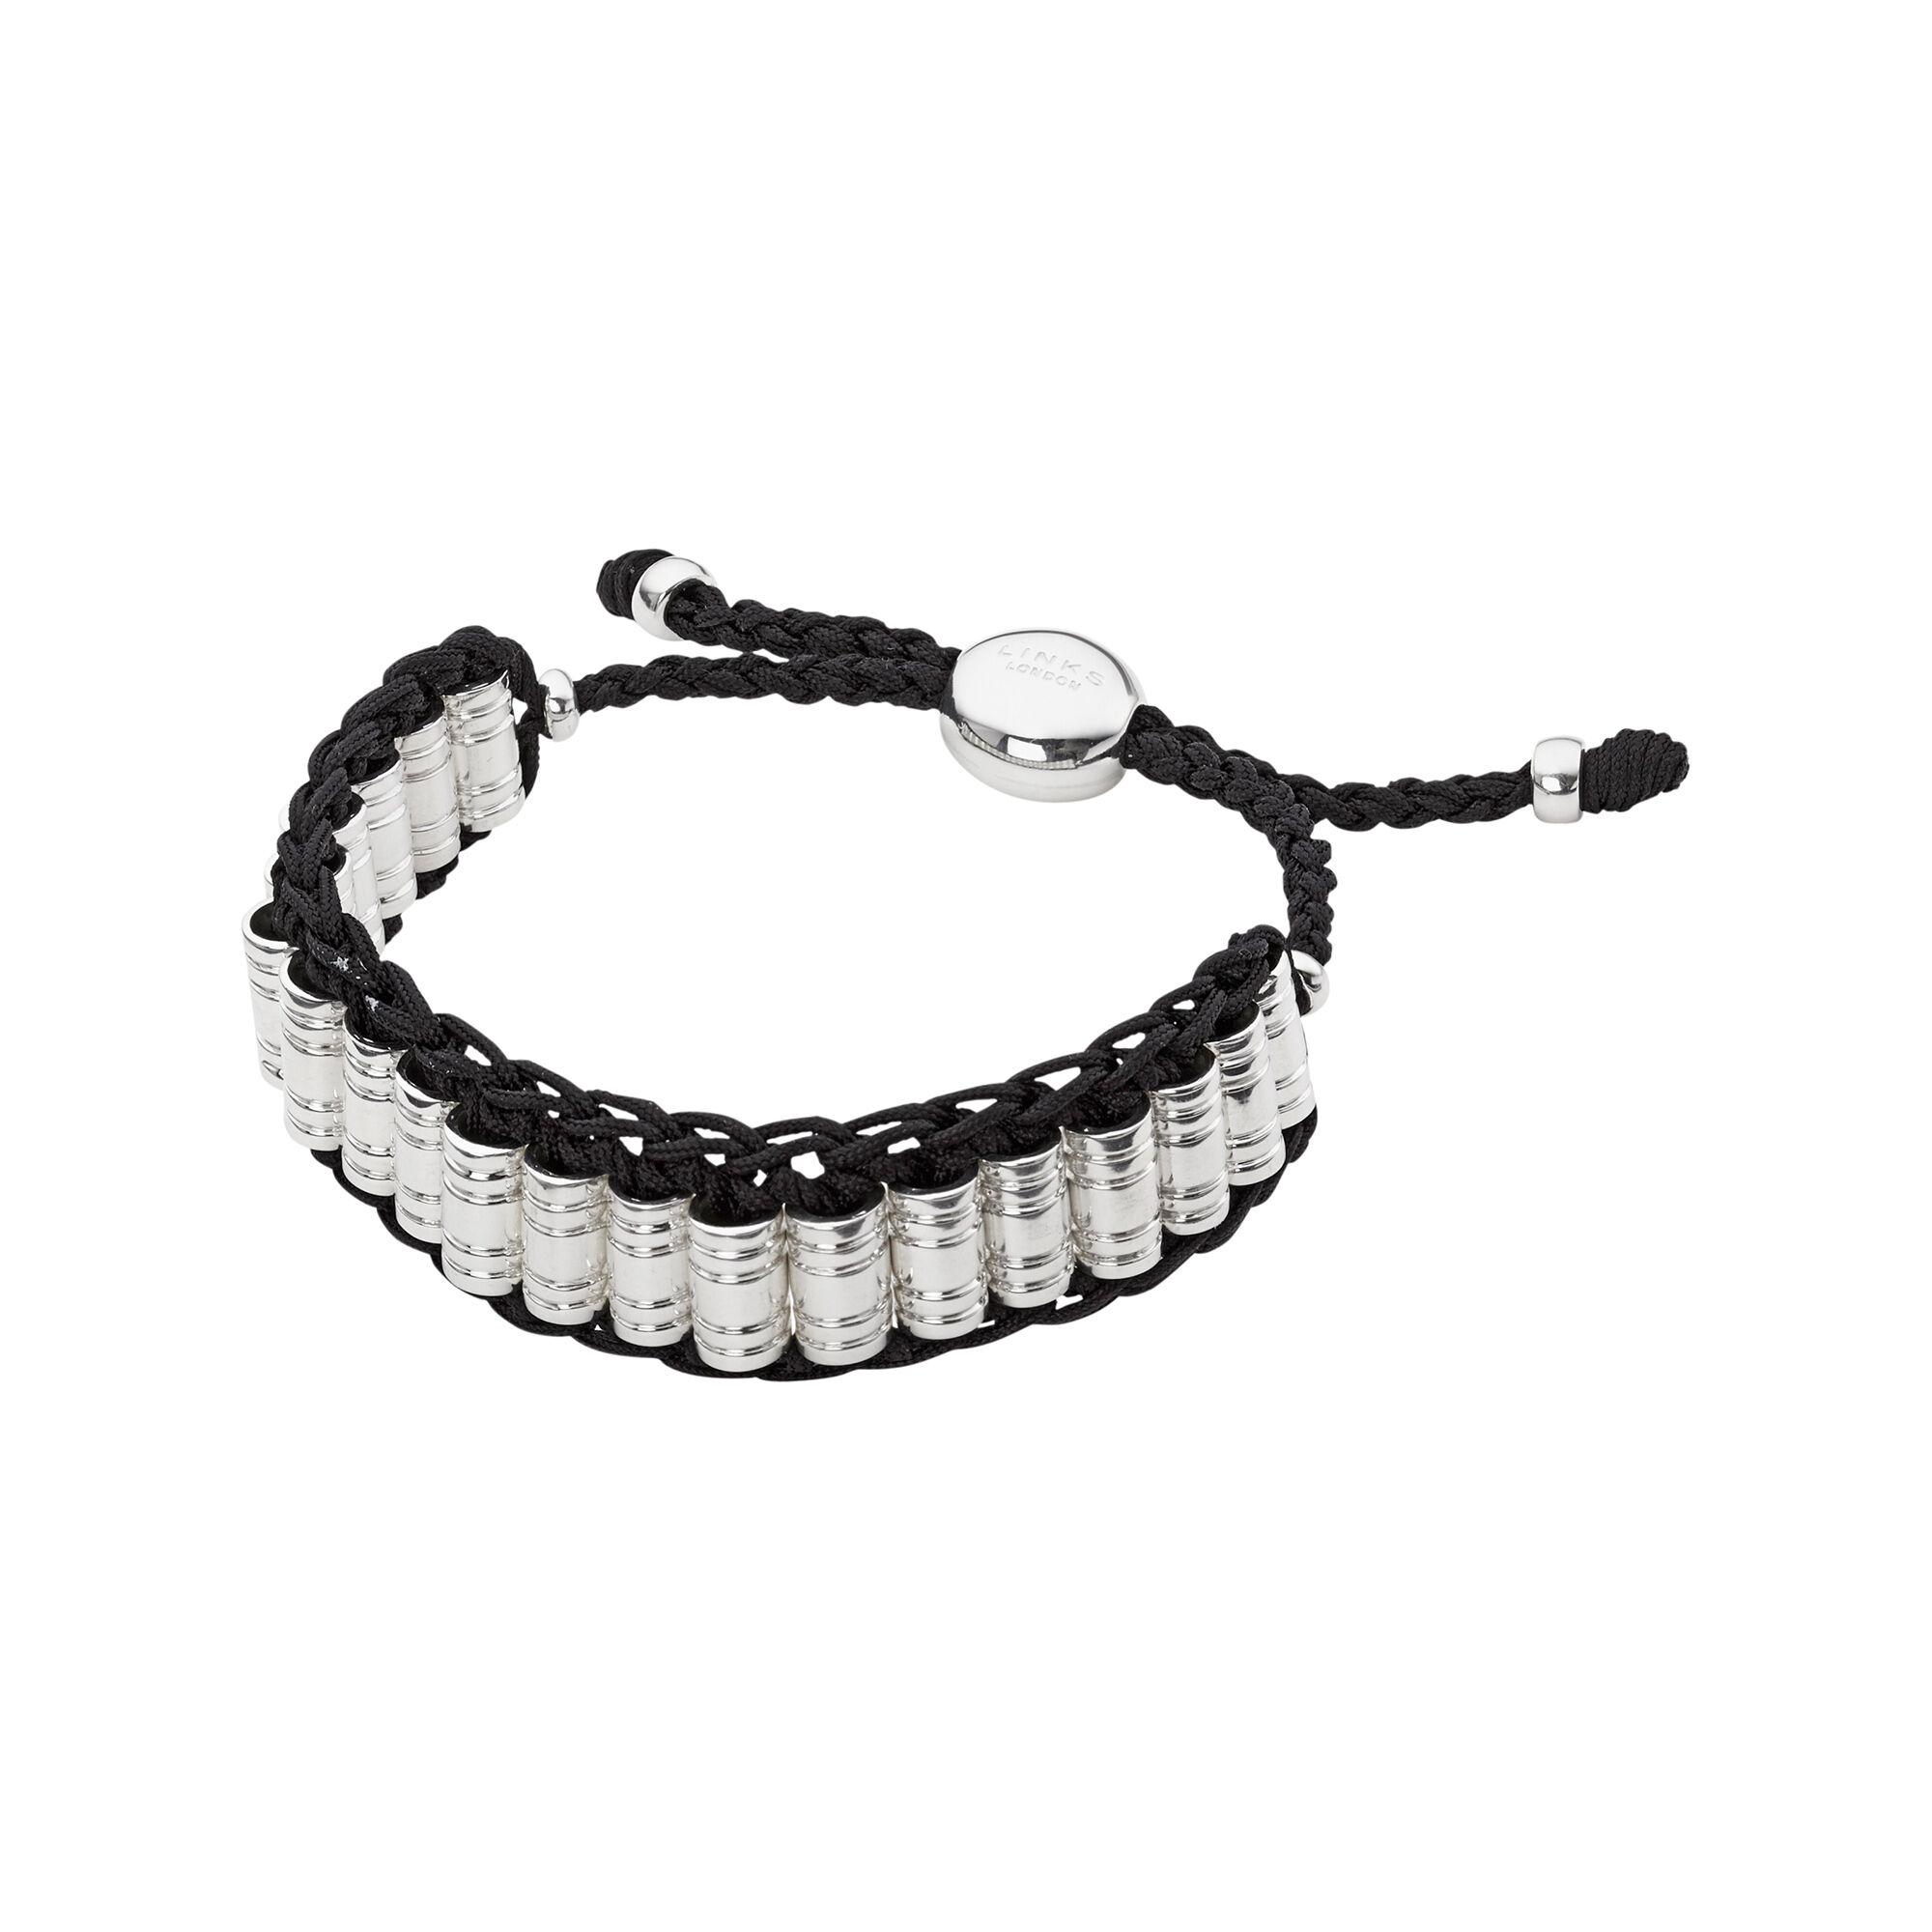 india at price product low buy zorawar bracelet for black men mens online in